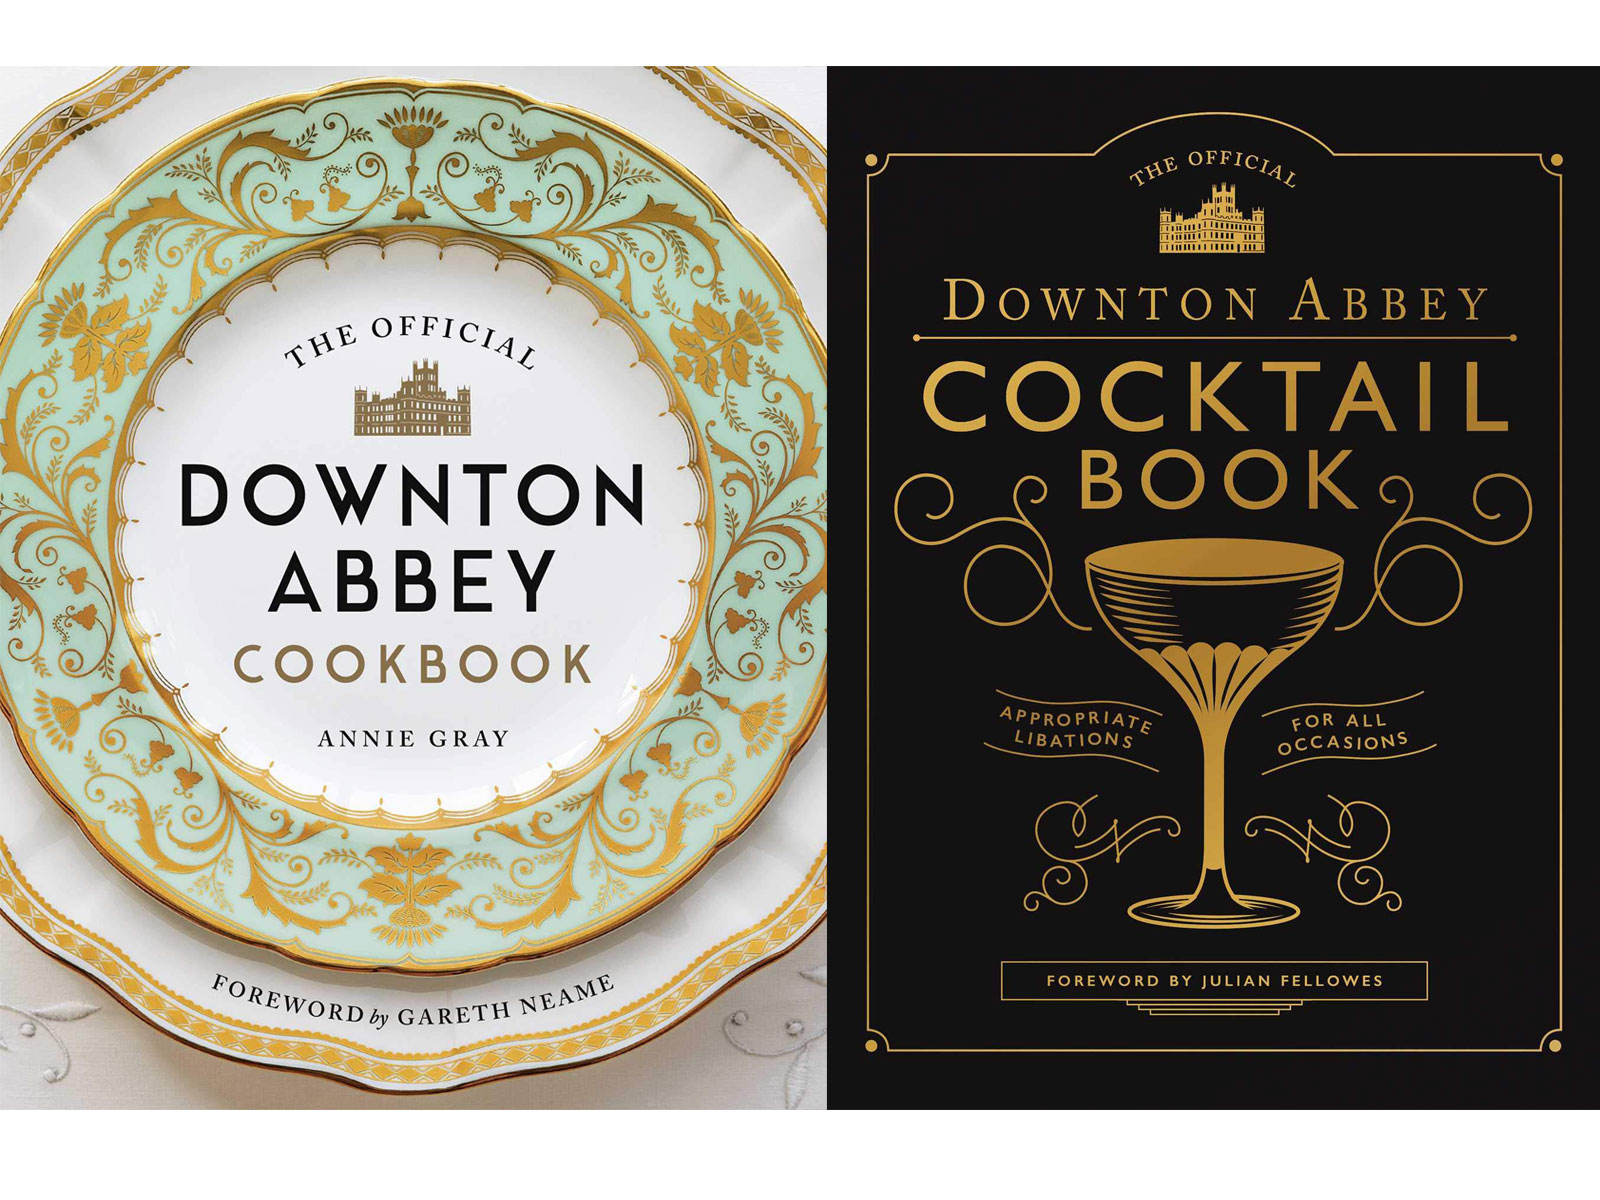 downton-cookbooks-covers-FT-BLOG0919.jpg